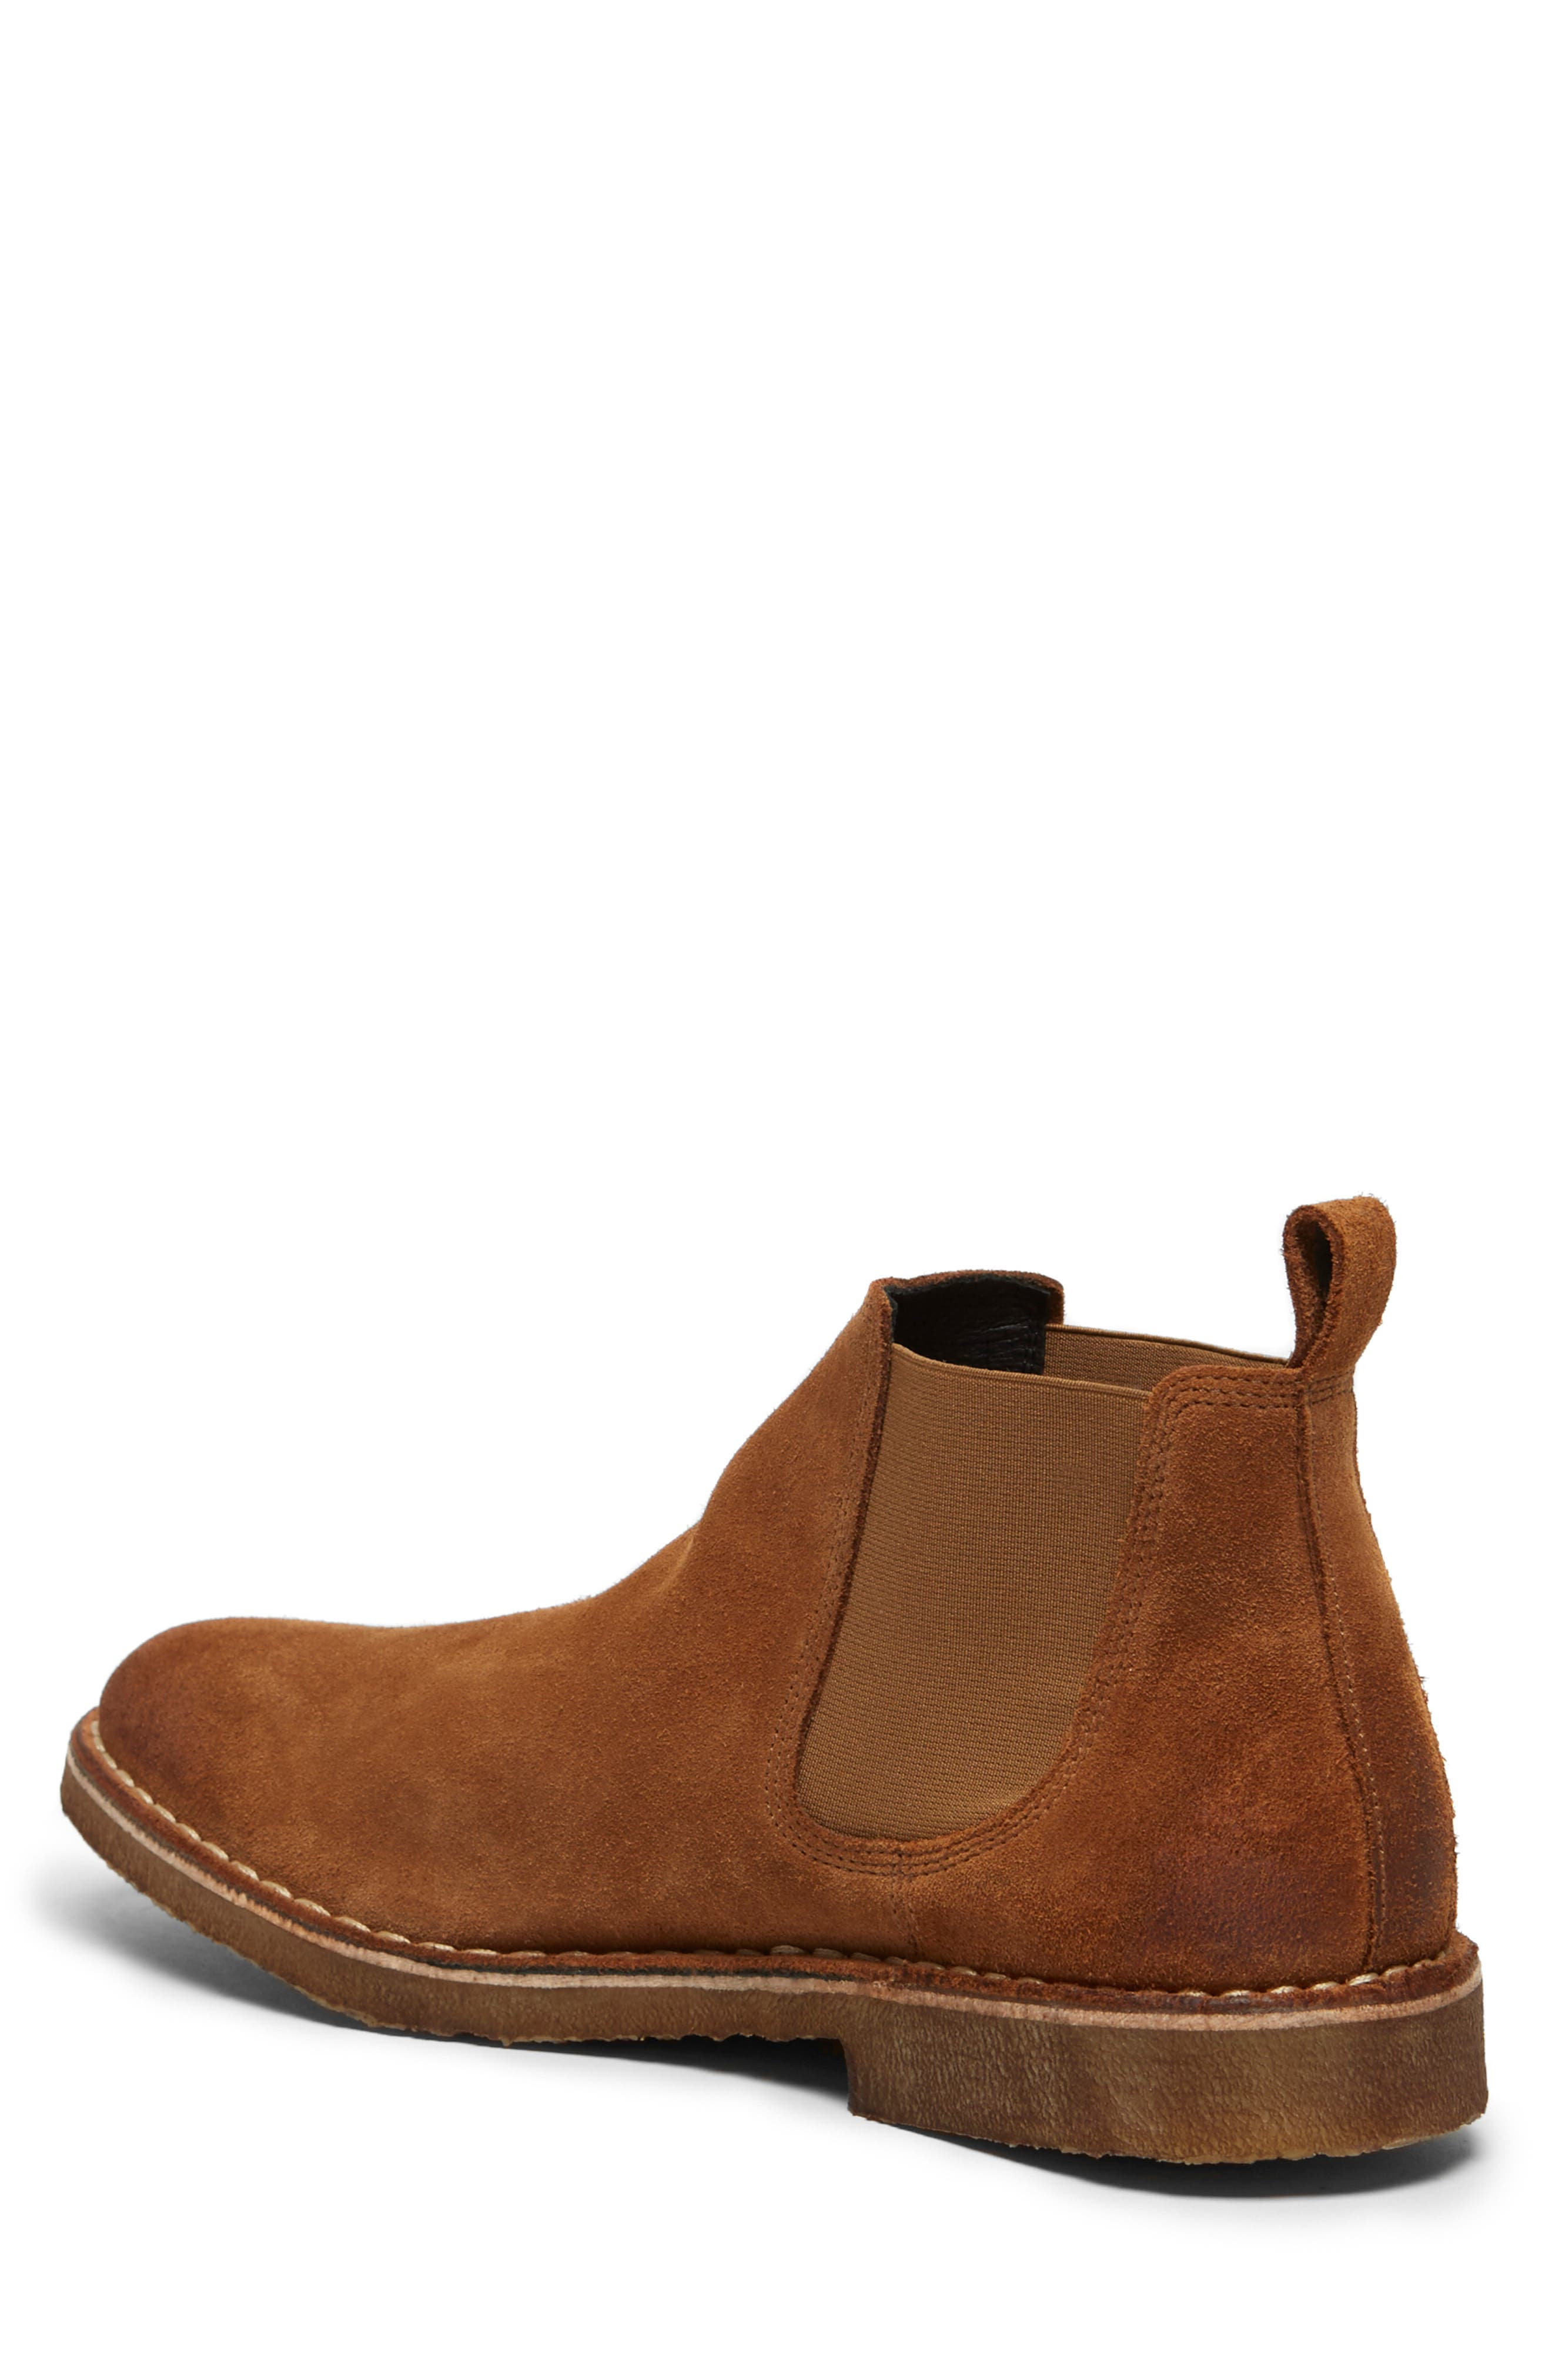 KENNETH COLE NEW YORK, Hewitt Chelsea Boot, Alternate thumbnail 2, color, RUST SUEDE